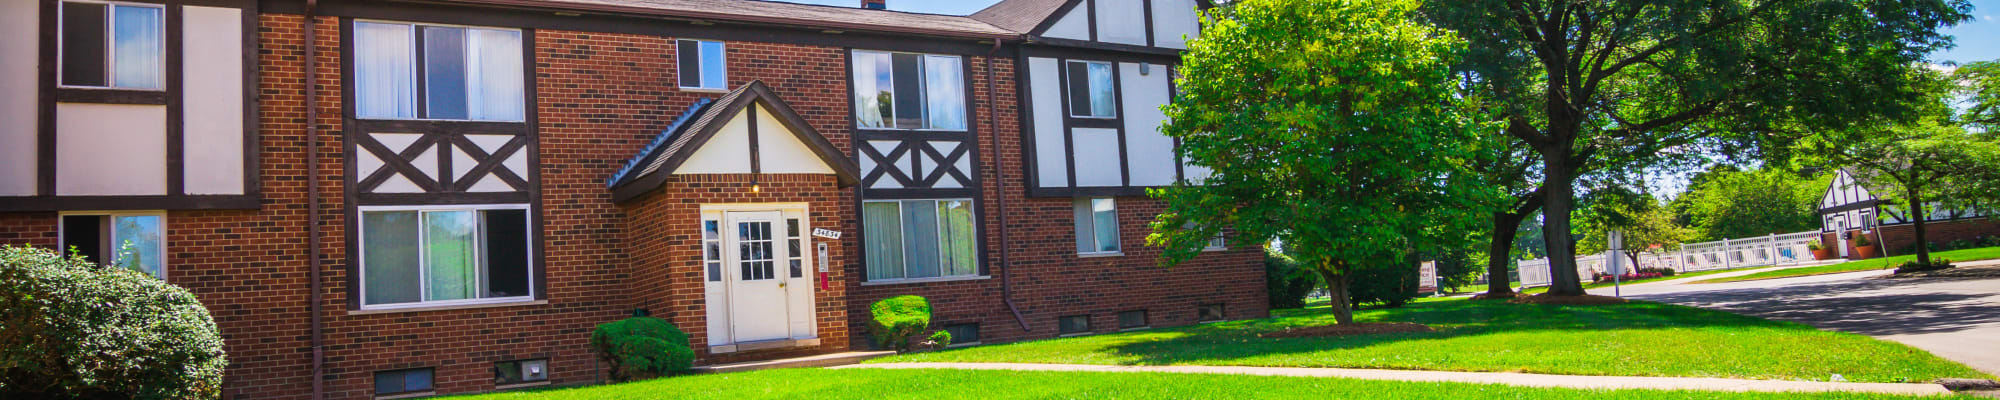 Resident resources at Maple Creek Apartments in Sterling Heights, Michigan